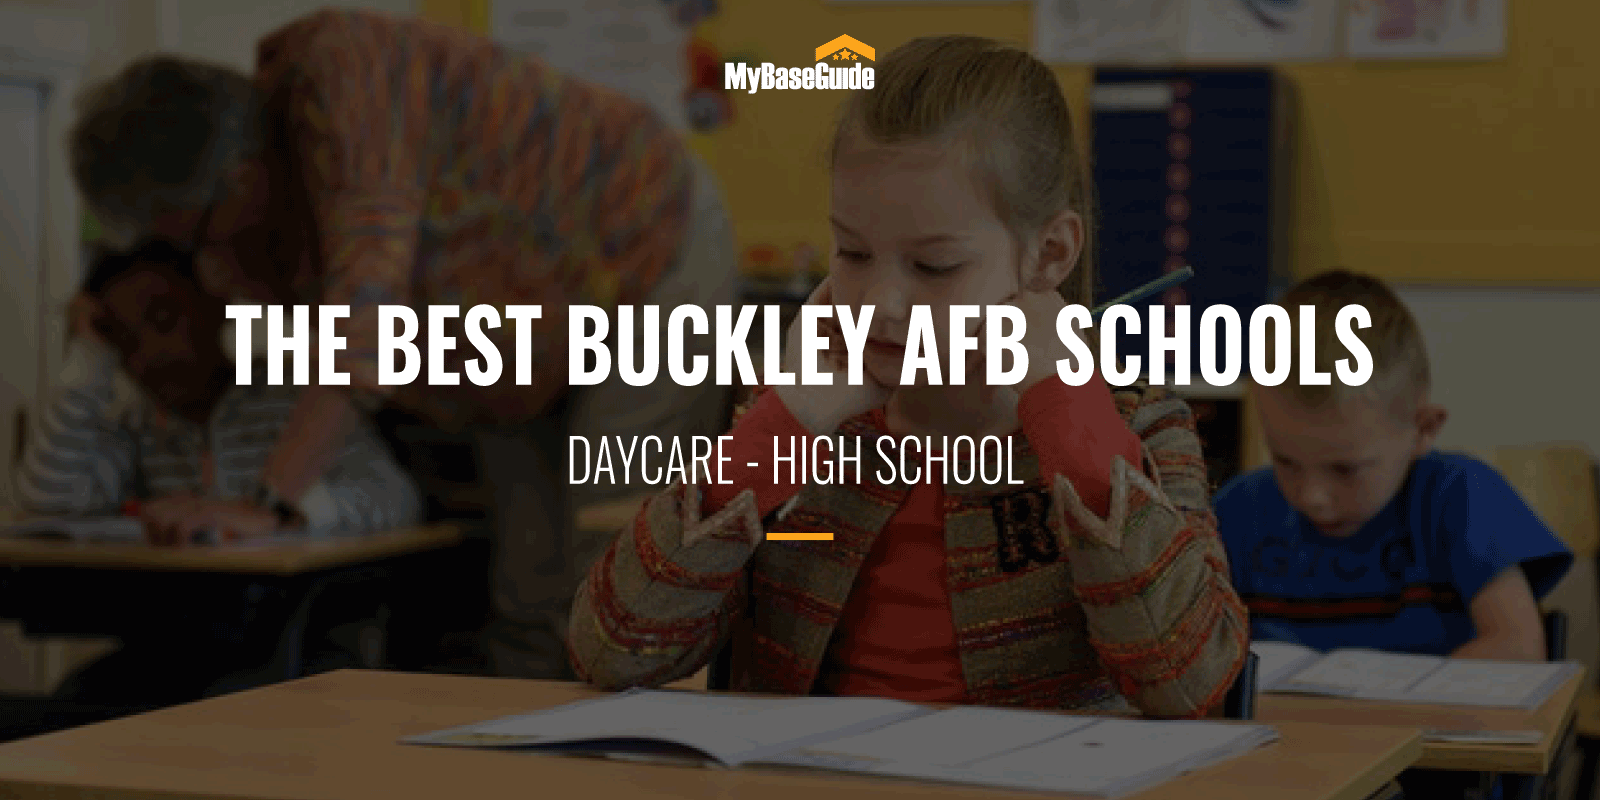 The Best Buckley AFB Schools: Daycare - High School